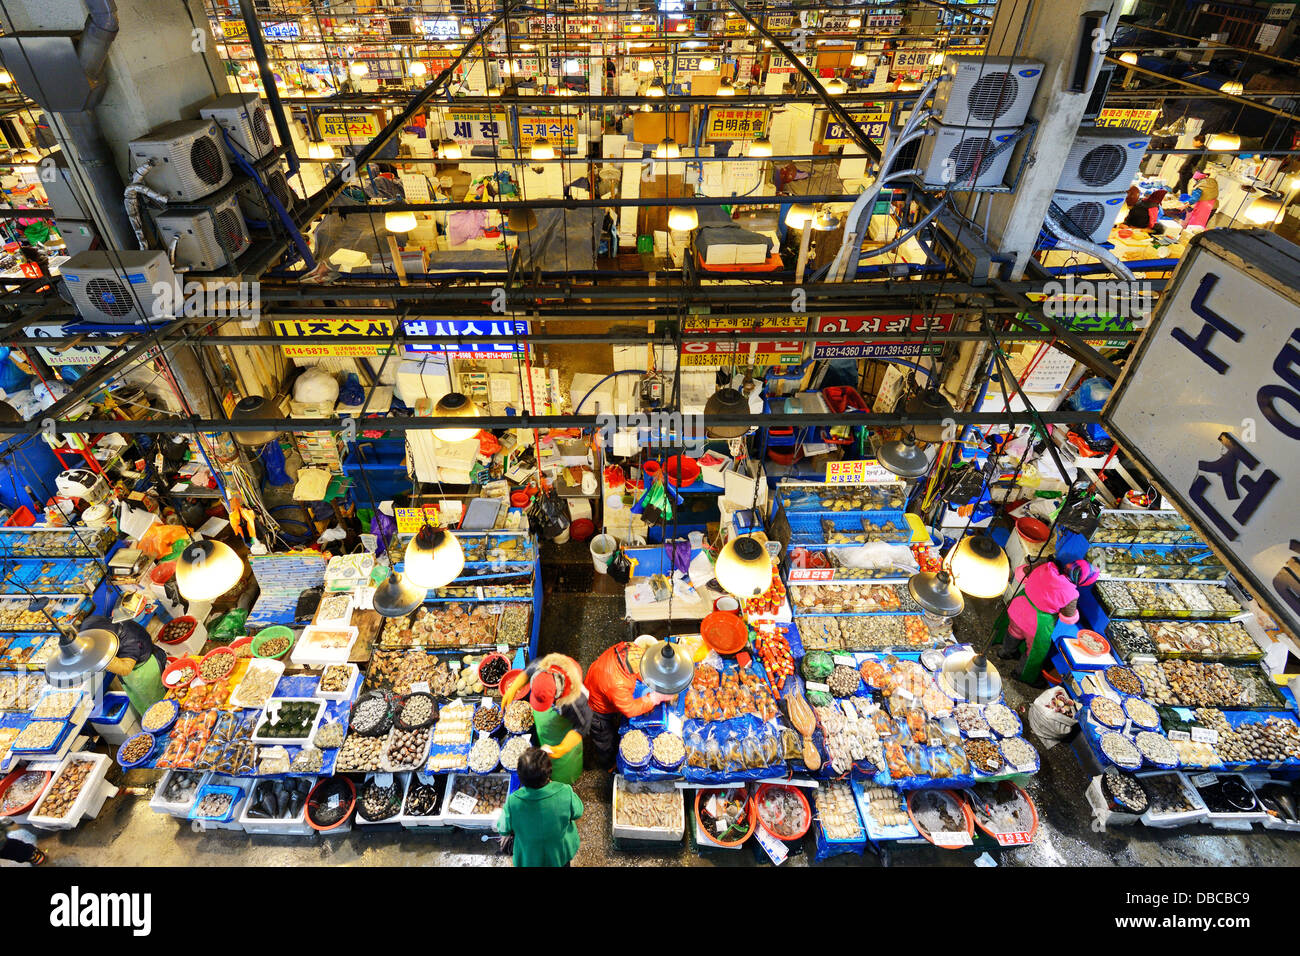 Noryangjin Fish market in Seoul, South Korea. - Stock Image